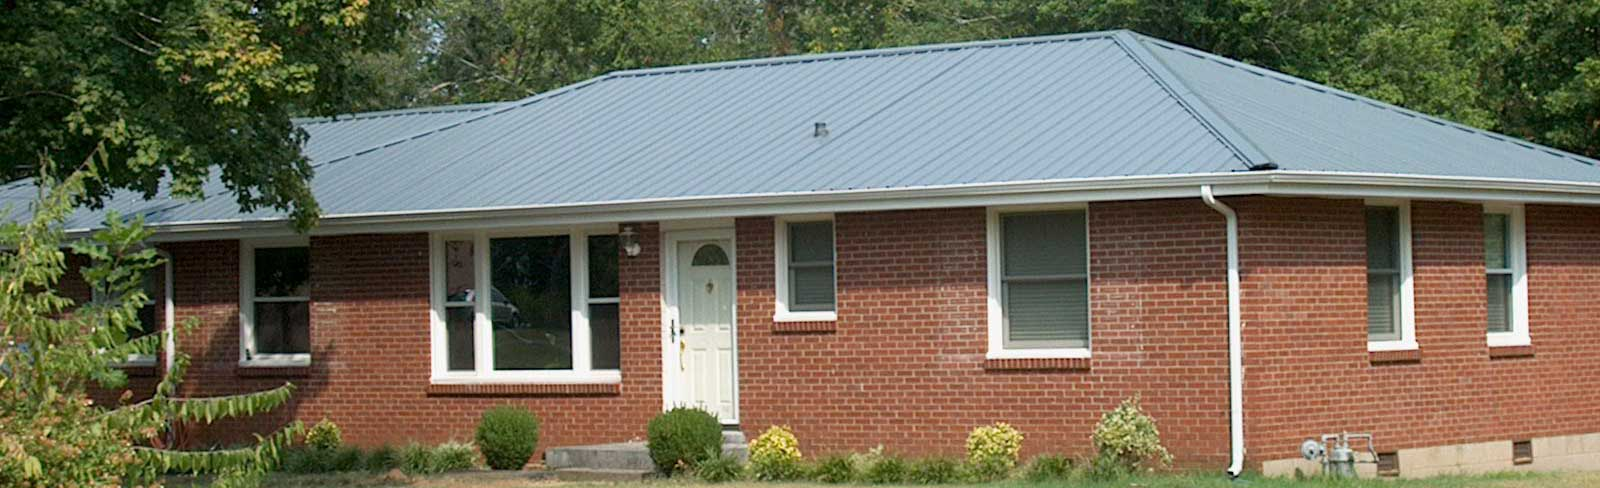 Tuff-Rib Quality Metal Roofing | Best Buy Metal Roofing